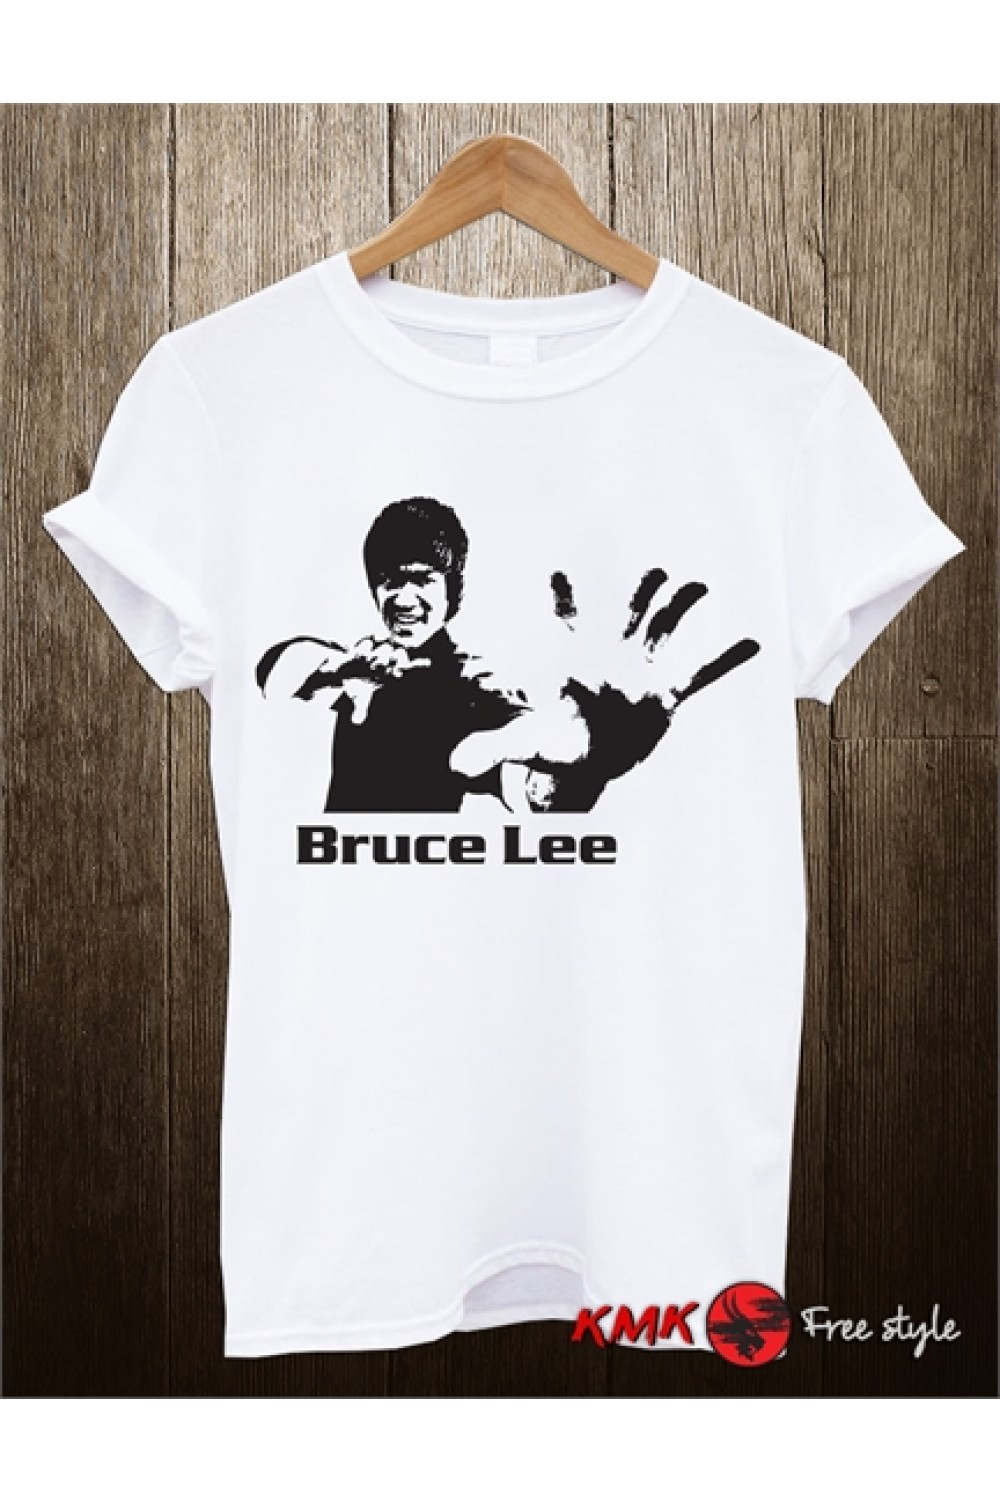 BRUCE LEE 1 Printed T shirt | Bruce Lee Tanktop | Bruce Lee Tee | Motivation Shirt